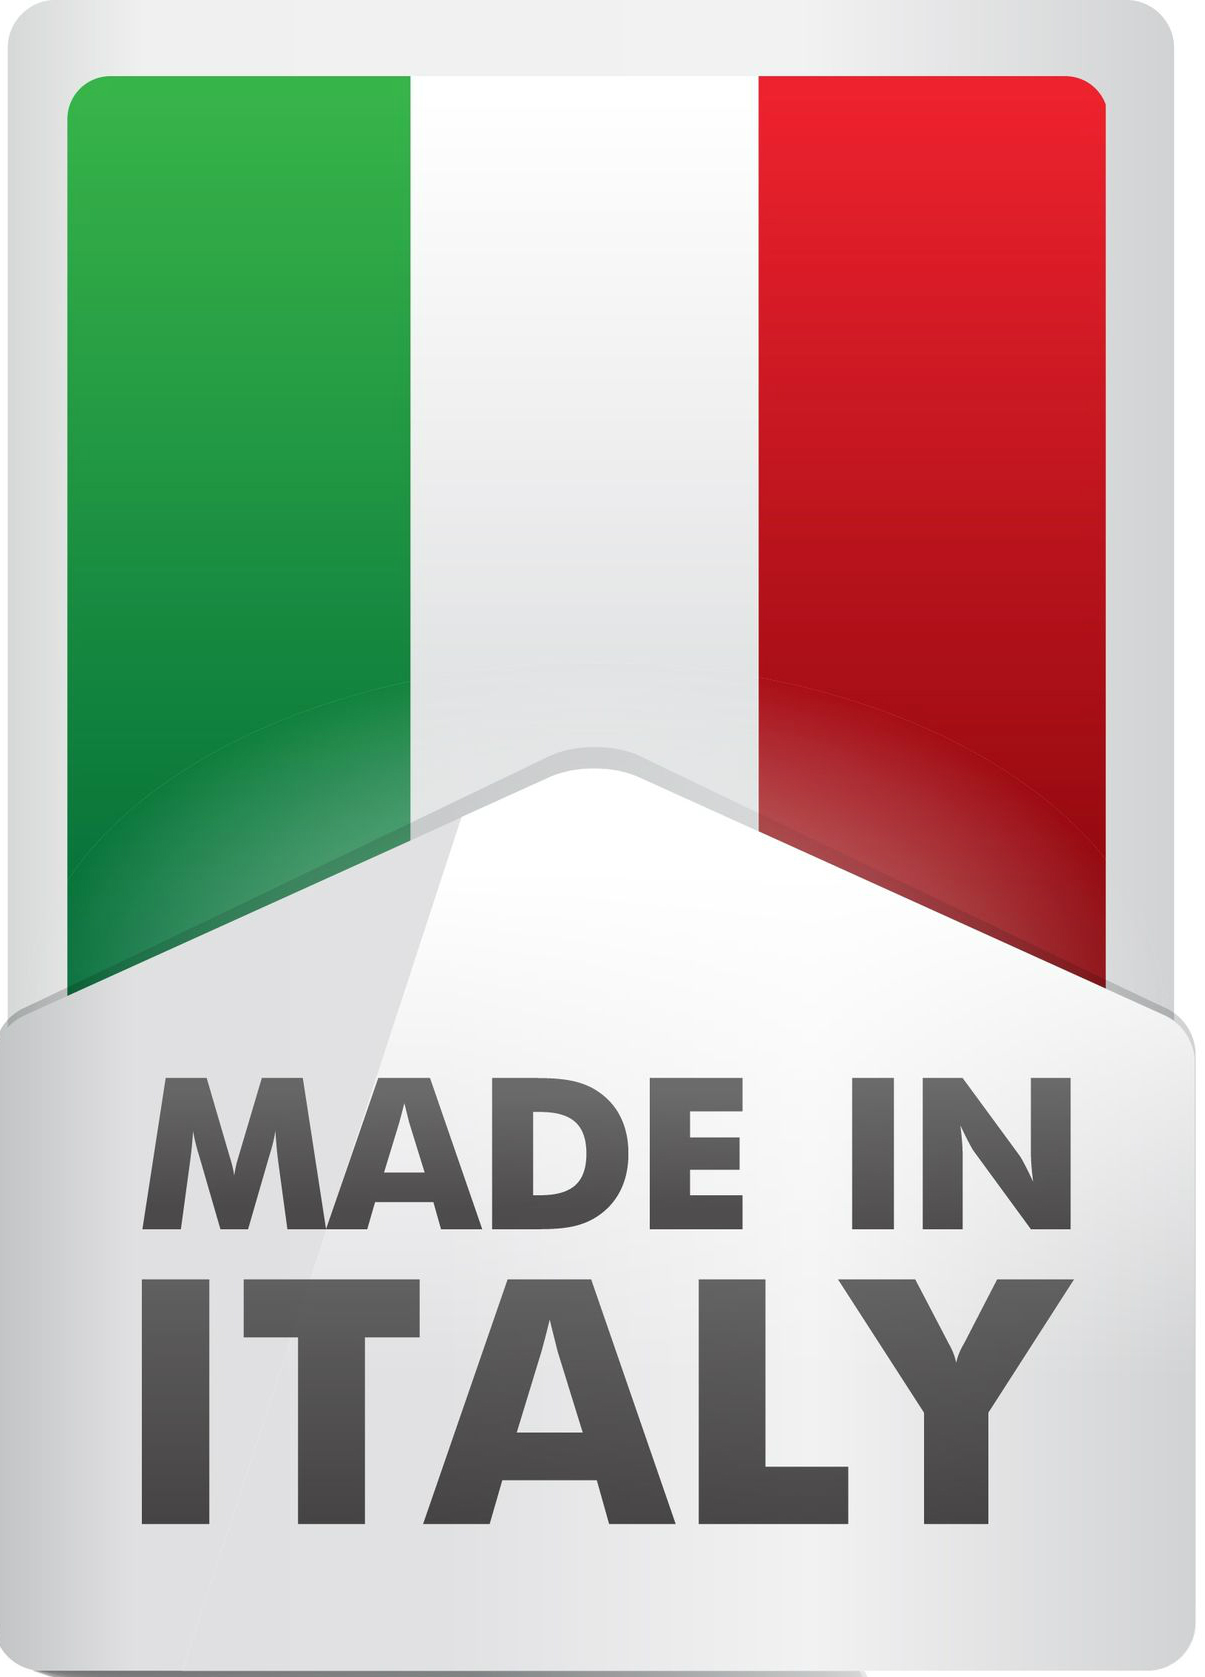 Image result for made in italy logo